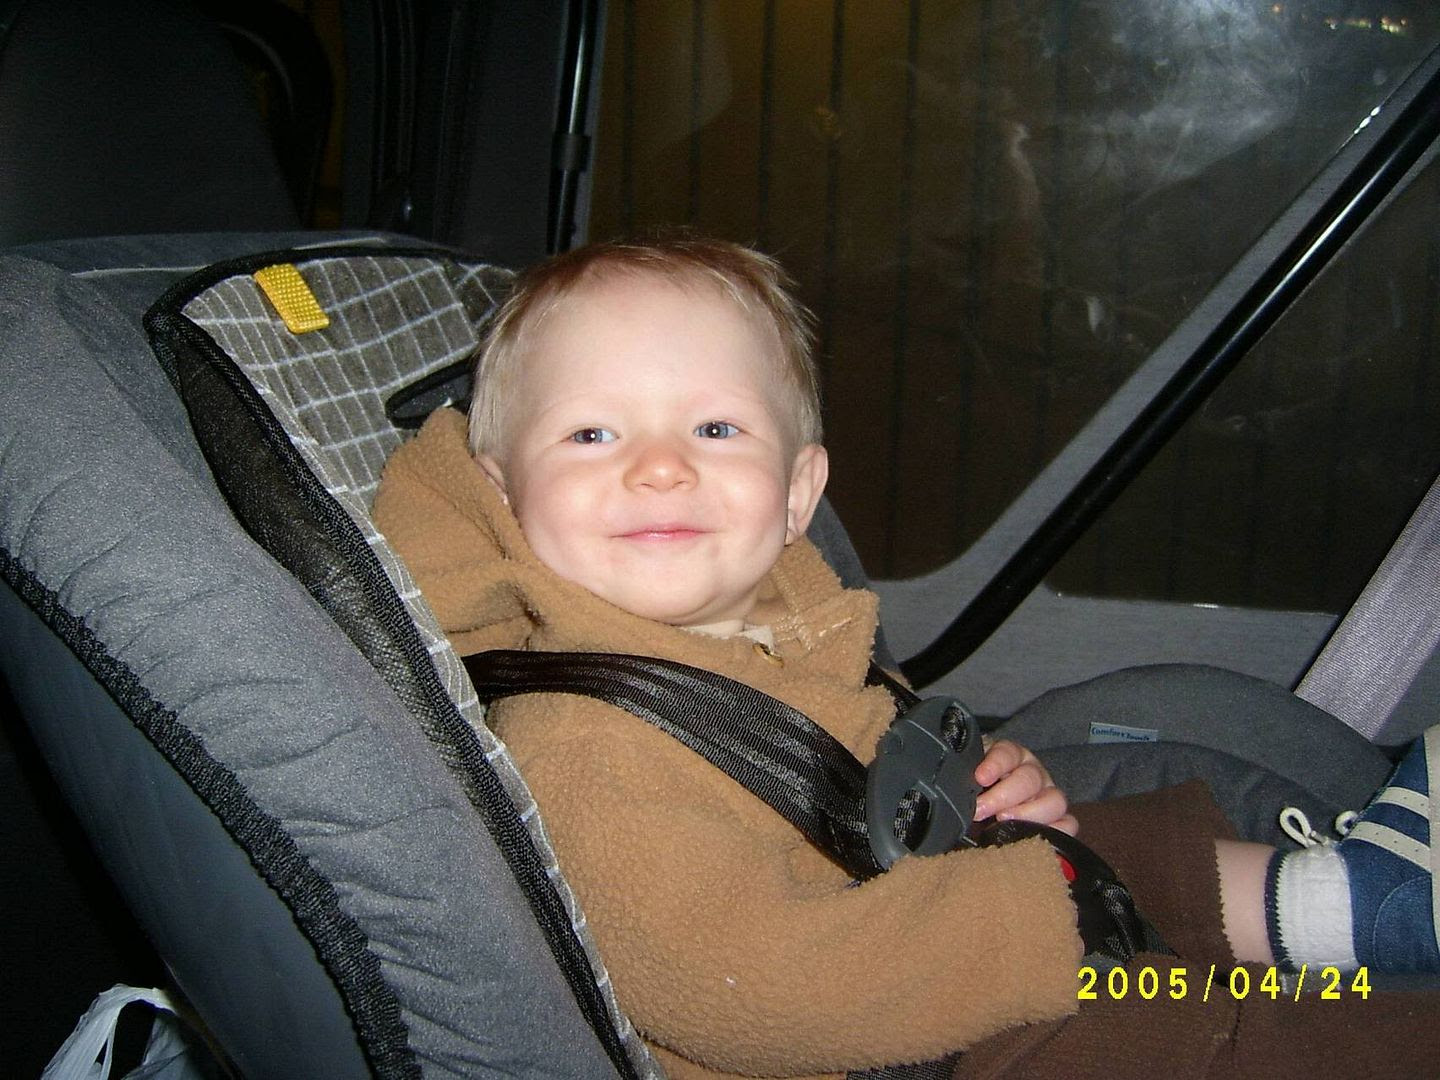 Gabriel in his new car seat